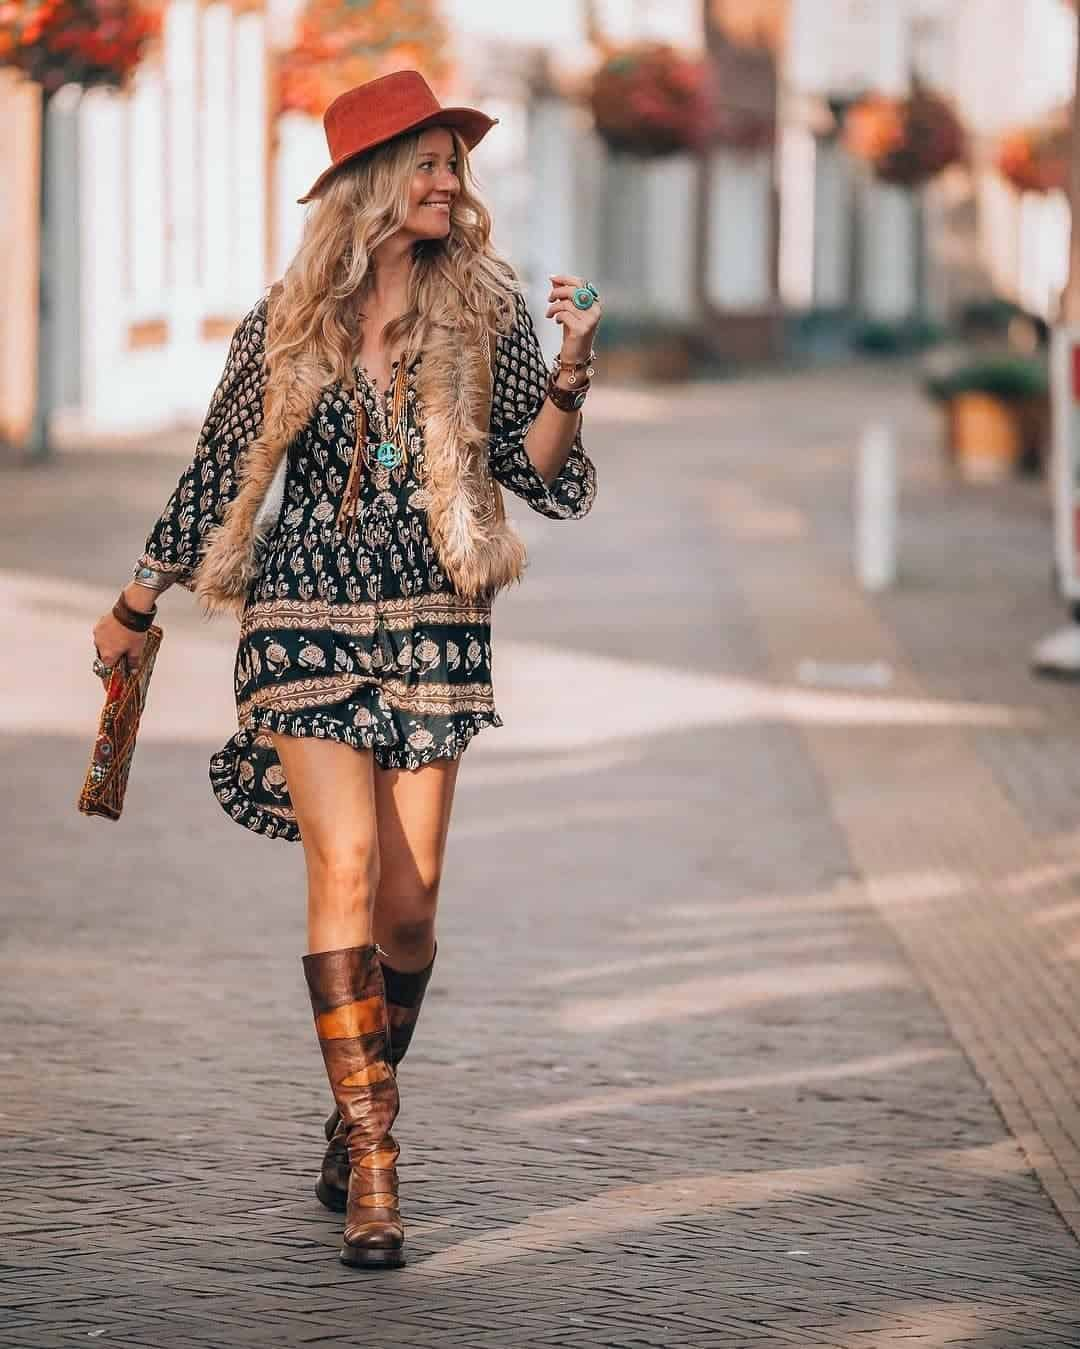 The latest fashion trends 2020 of bohemian styles